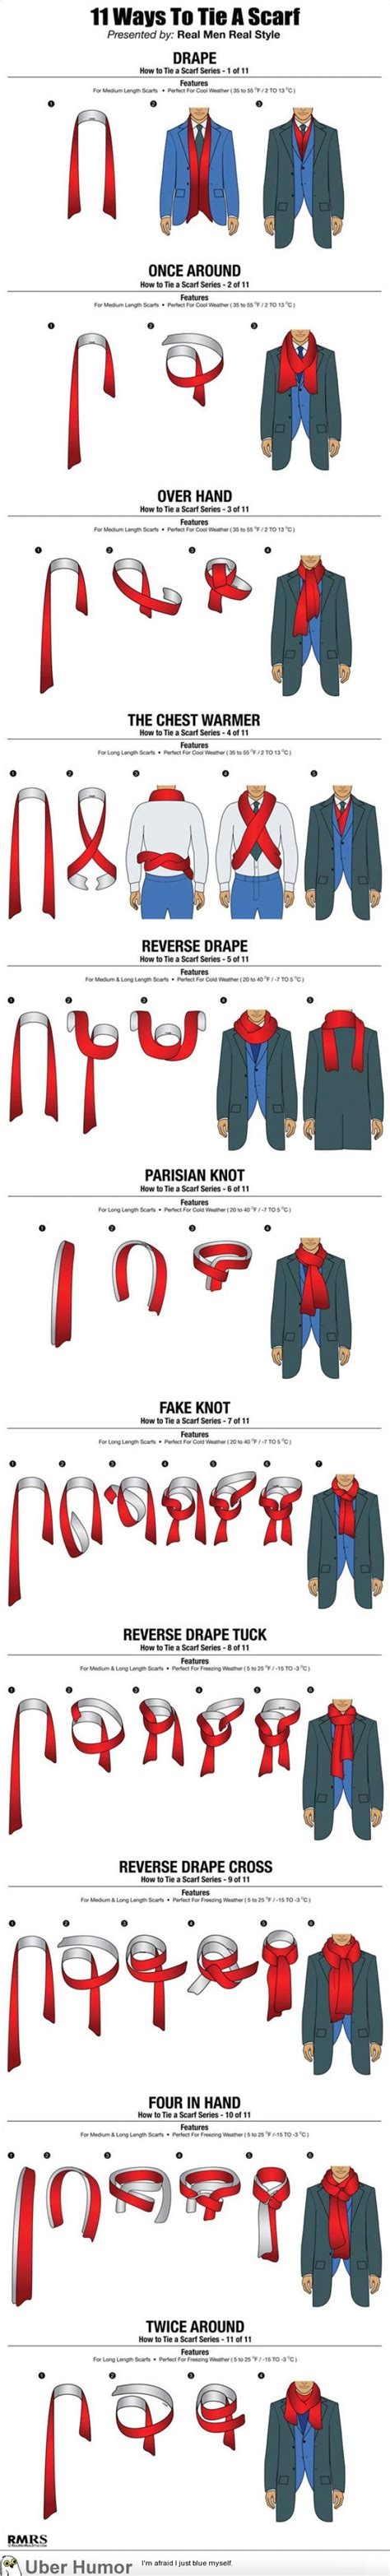 11 ways a guy can tie his scarf the huffington post 11 ways a guy can tie his scarf funny pictures quotes